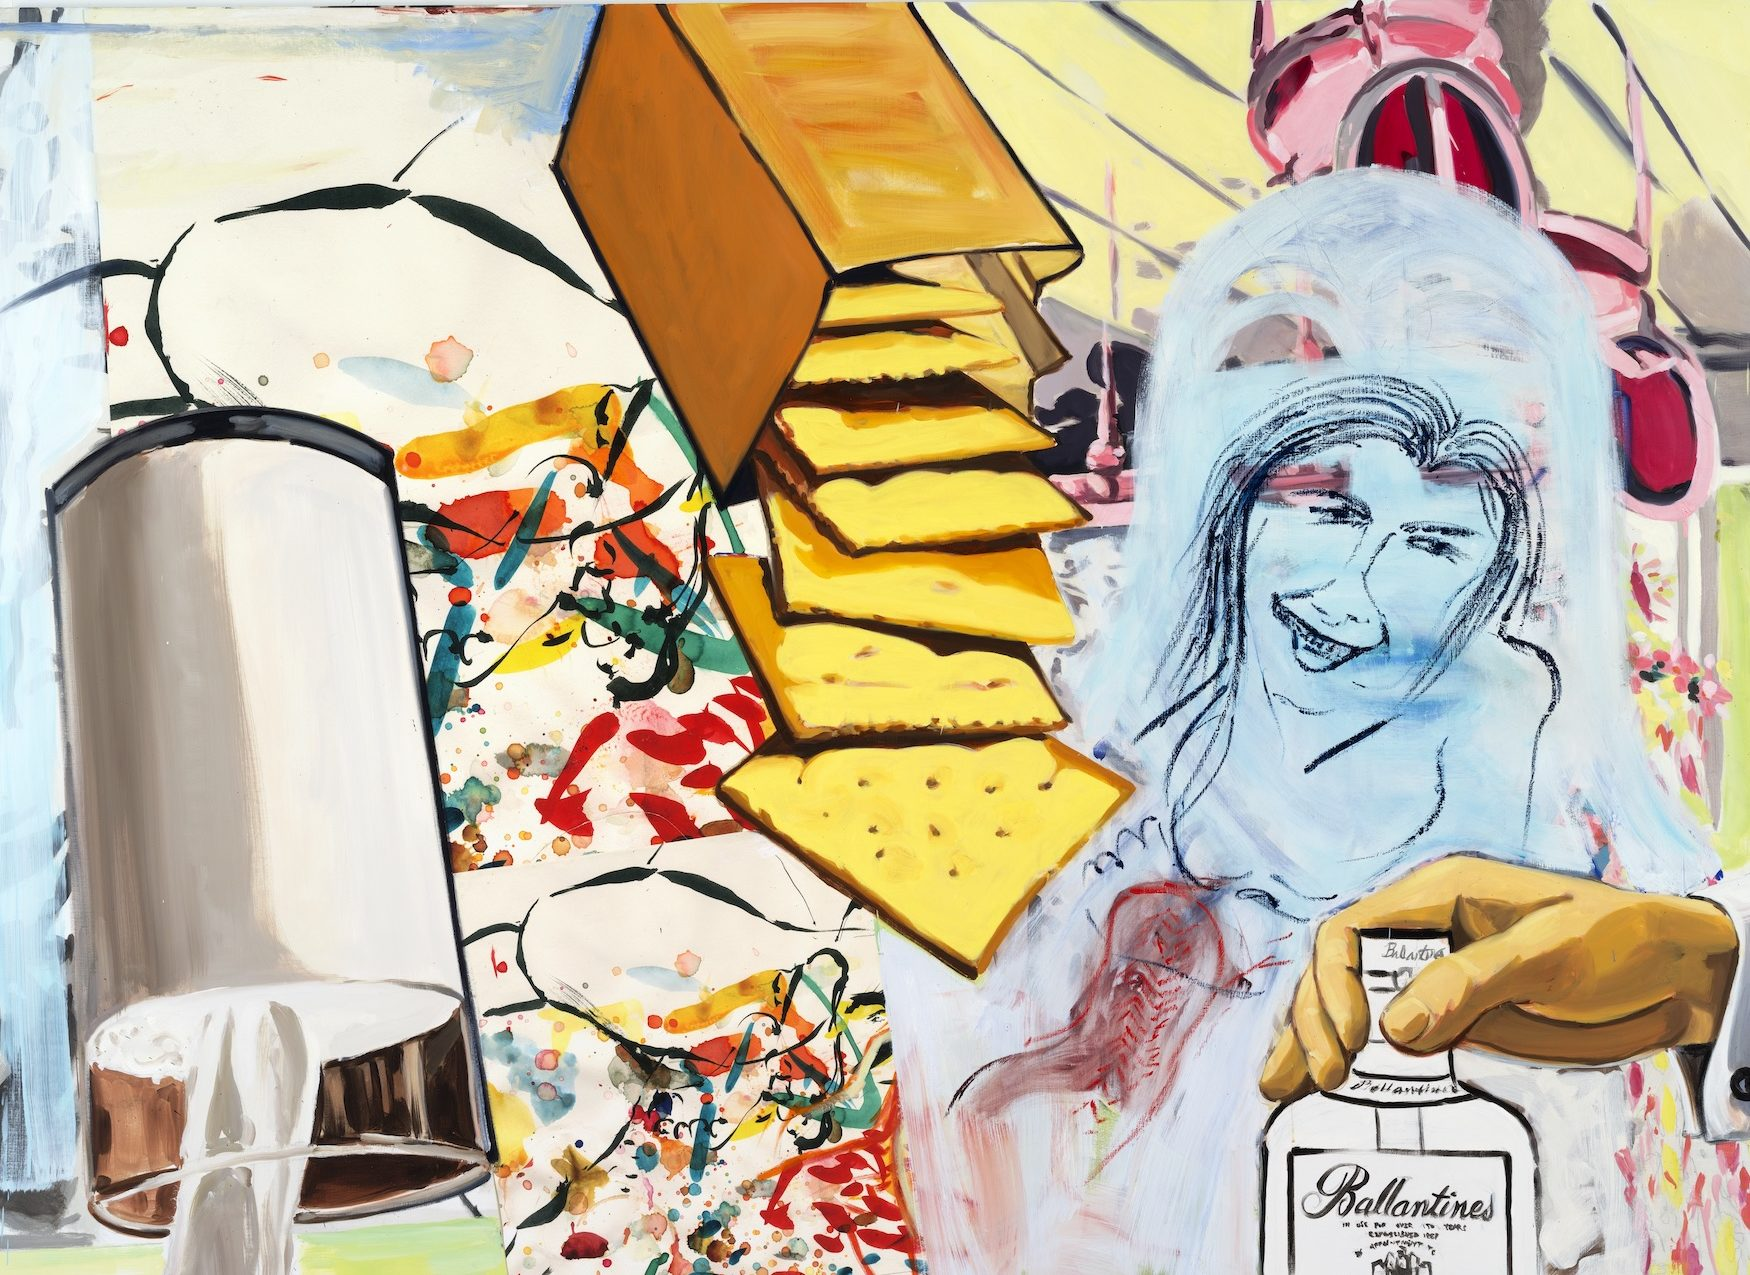 David Salle, Ballantines, 2014 oil, acrylic and pigment print on linen. Courtesy of the artist and Skarstedt, New York